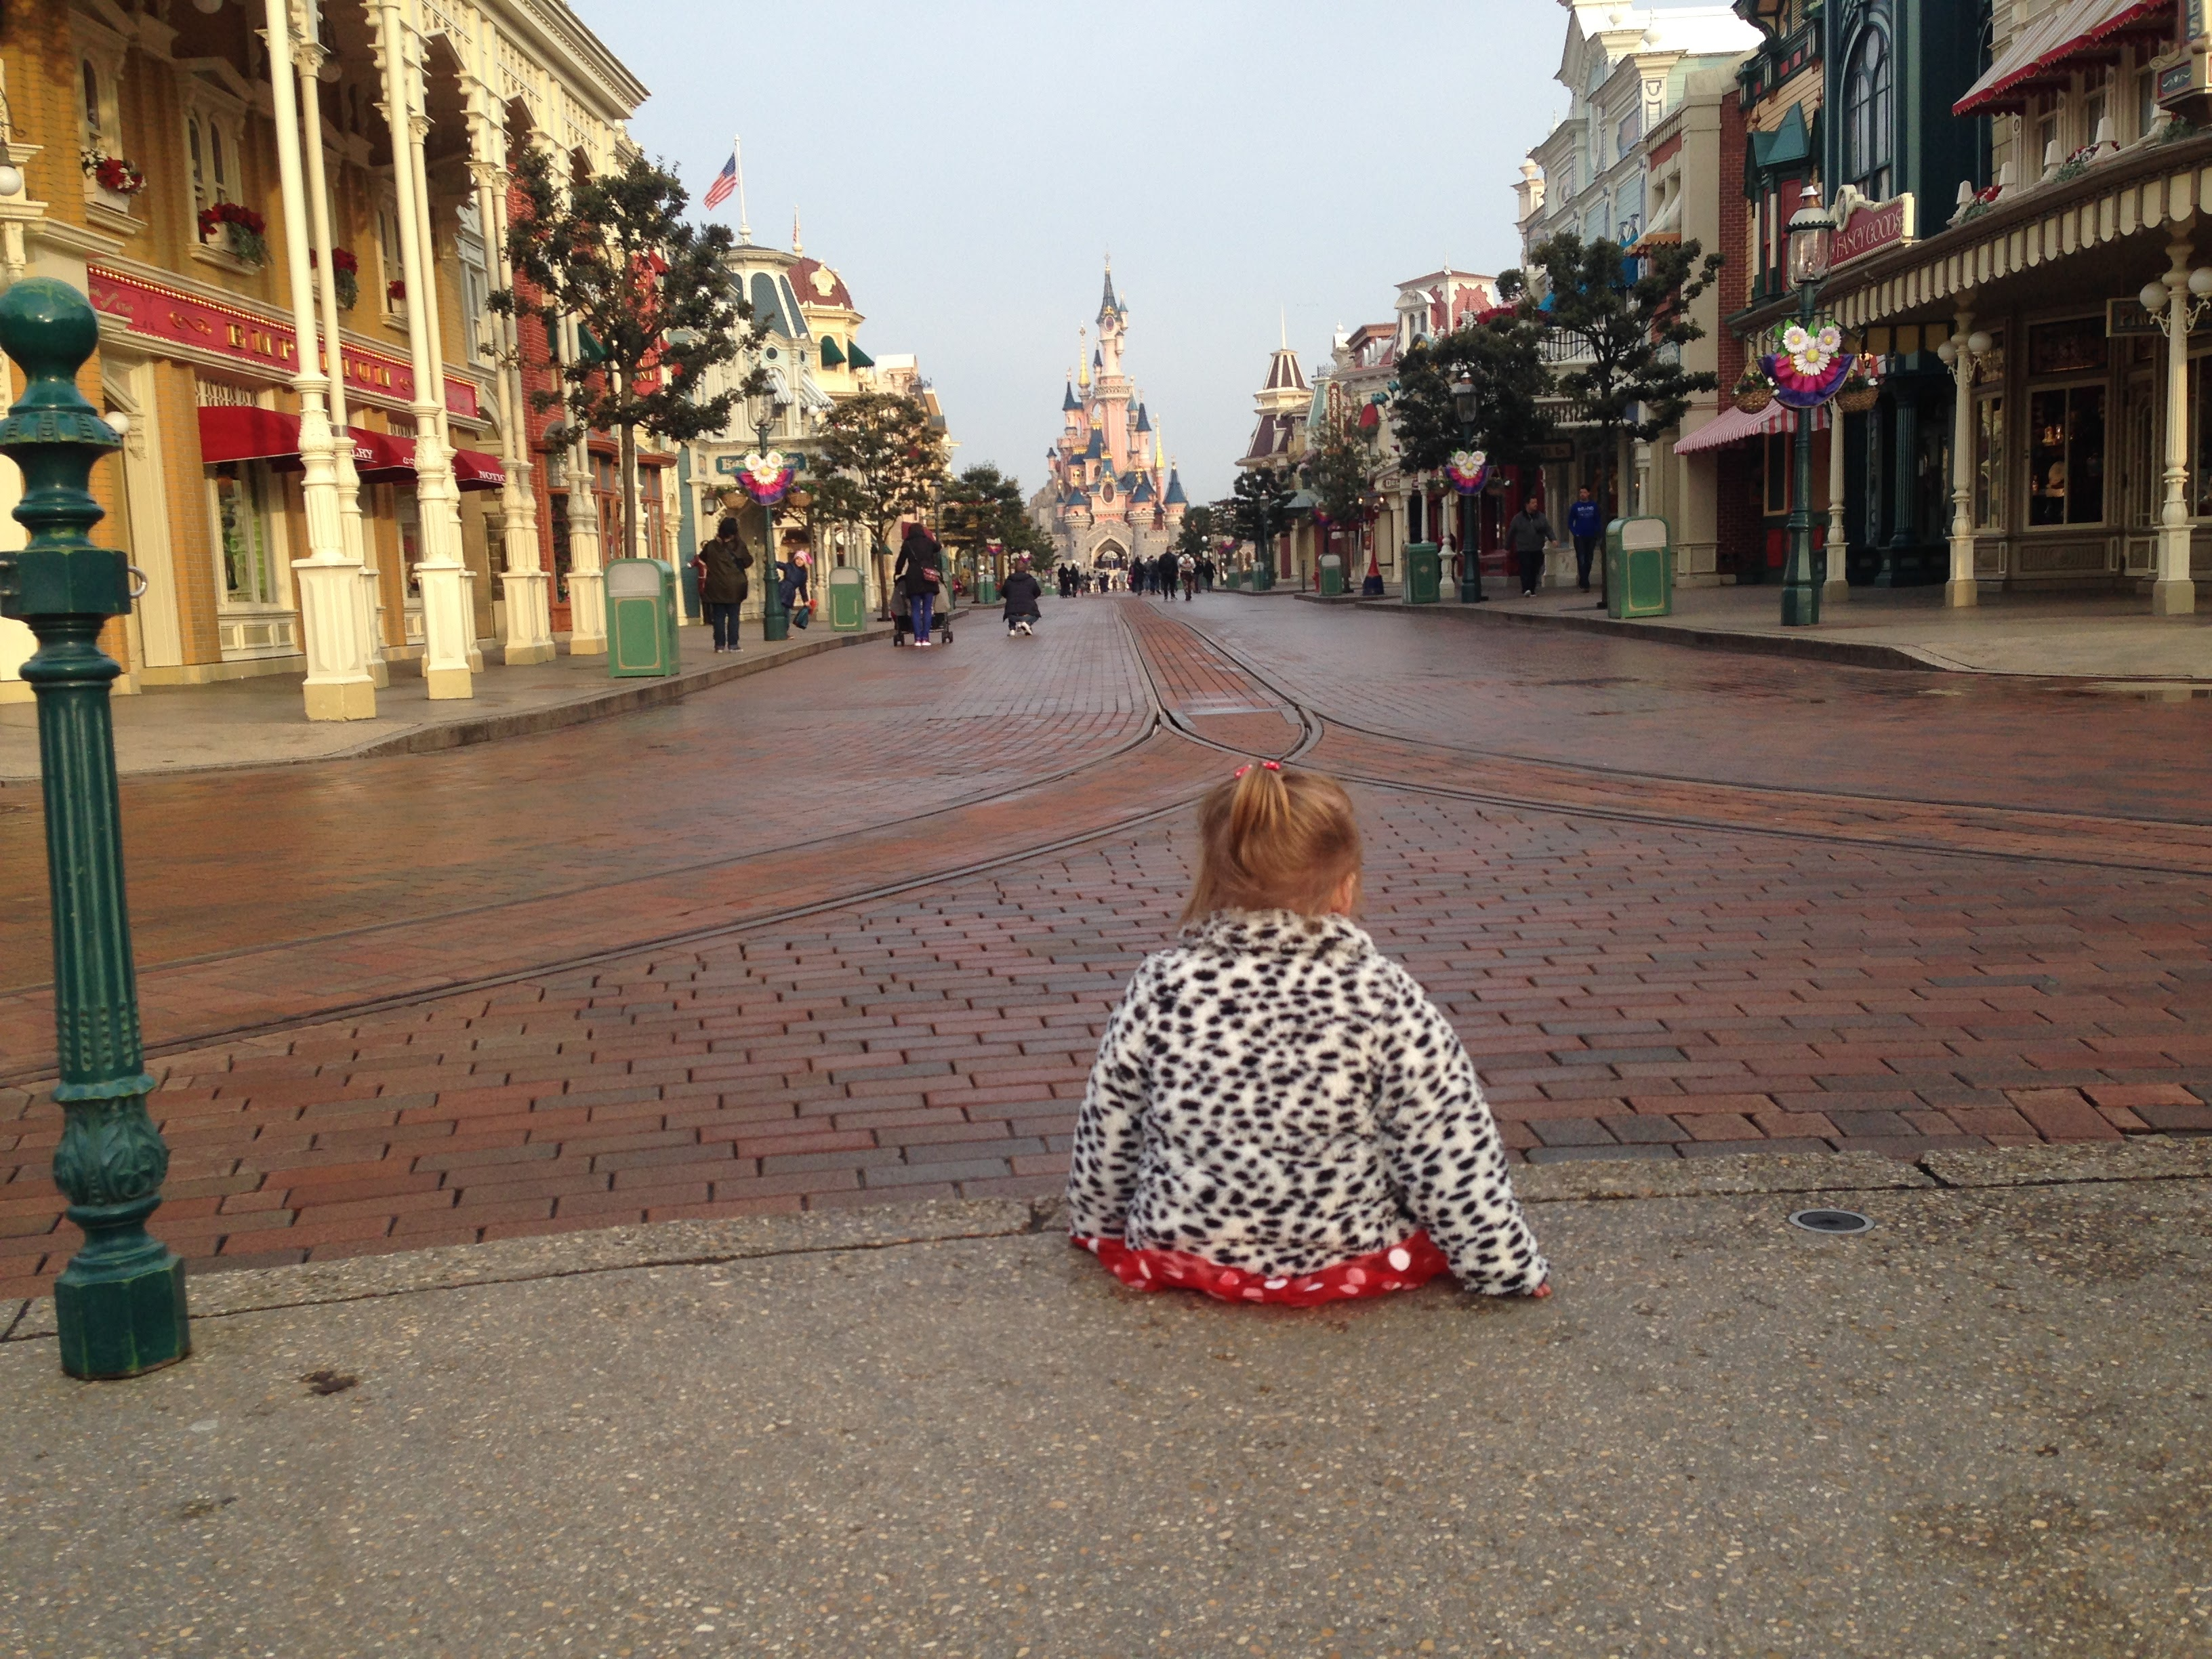 How much spending money should i take to Disneyland Paris?